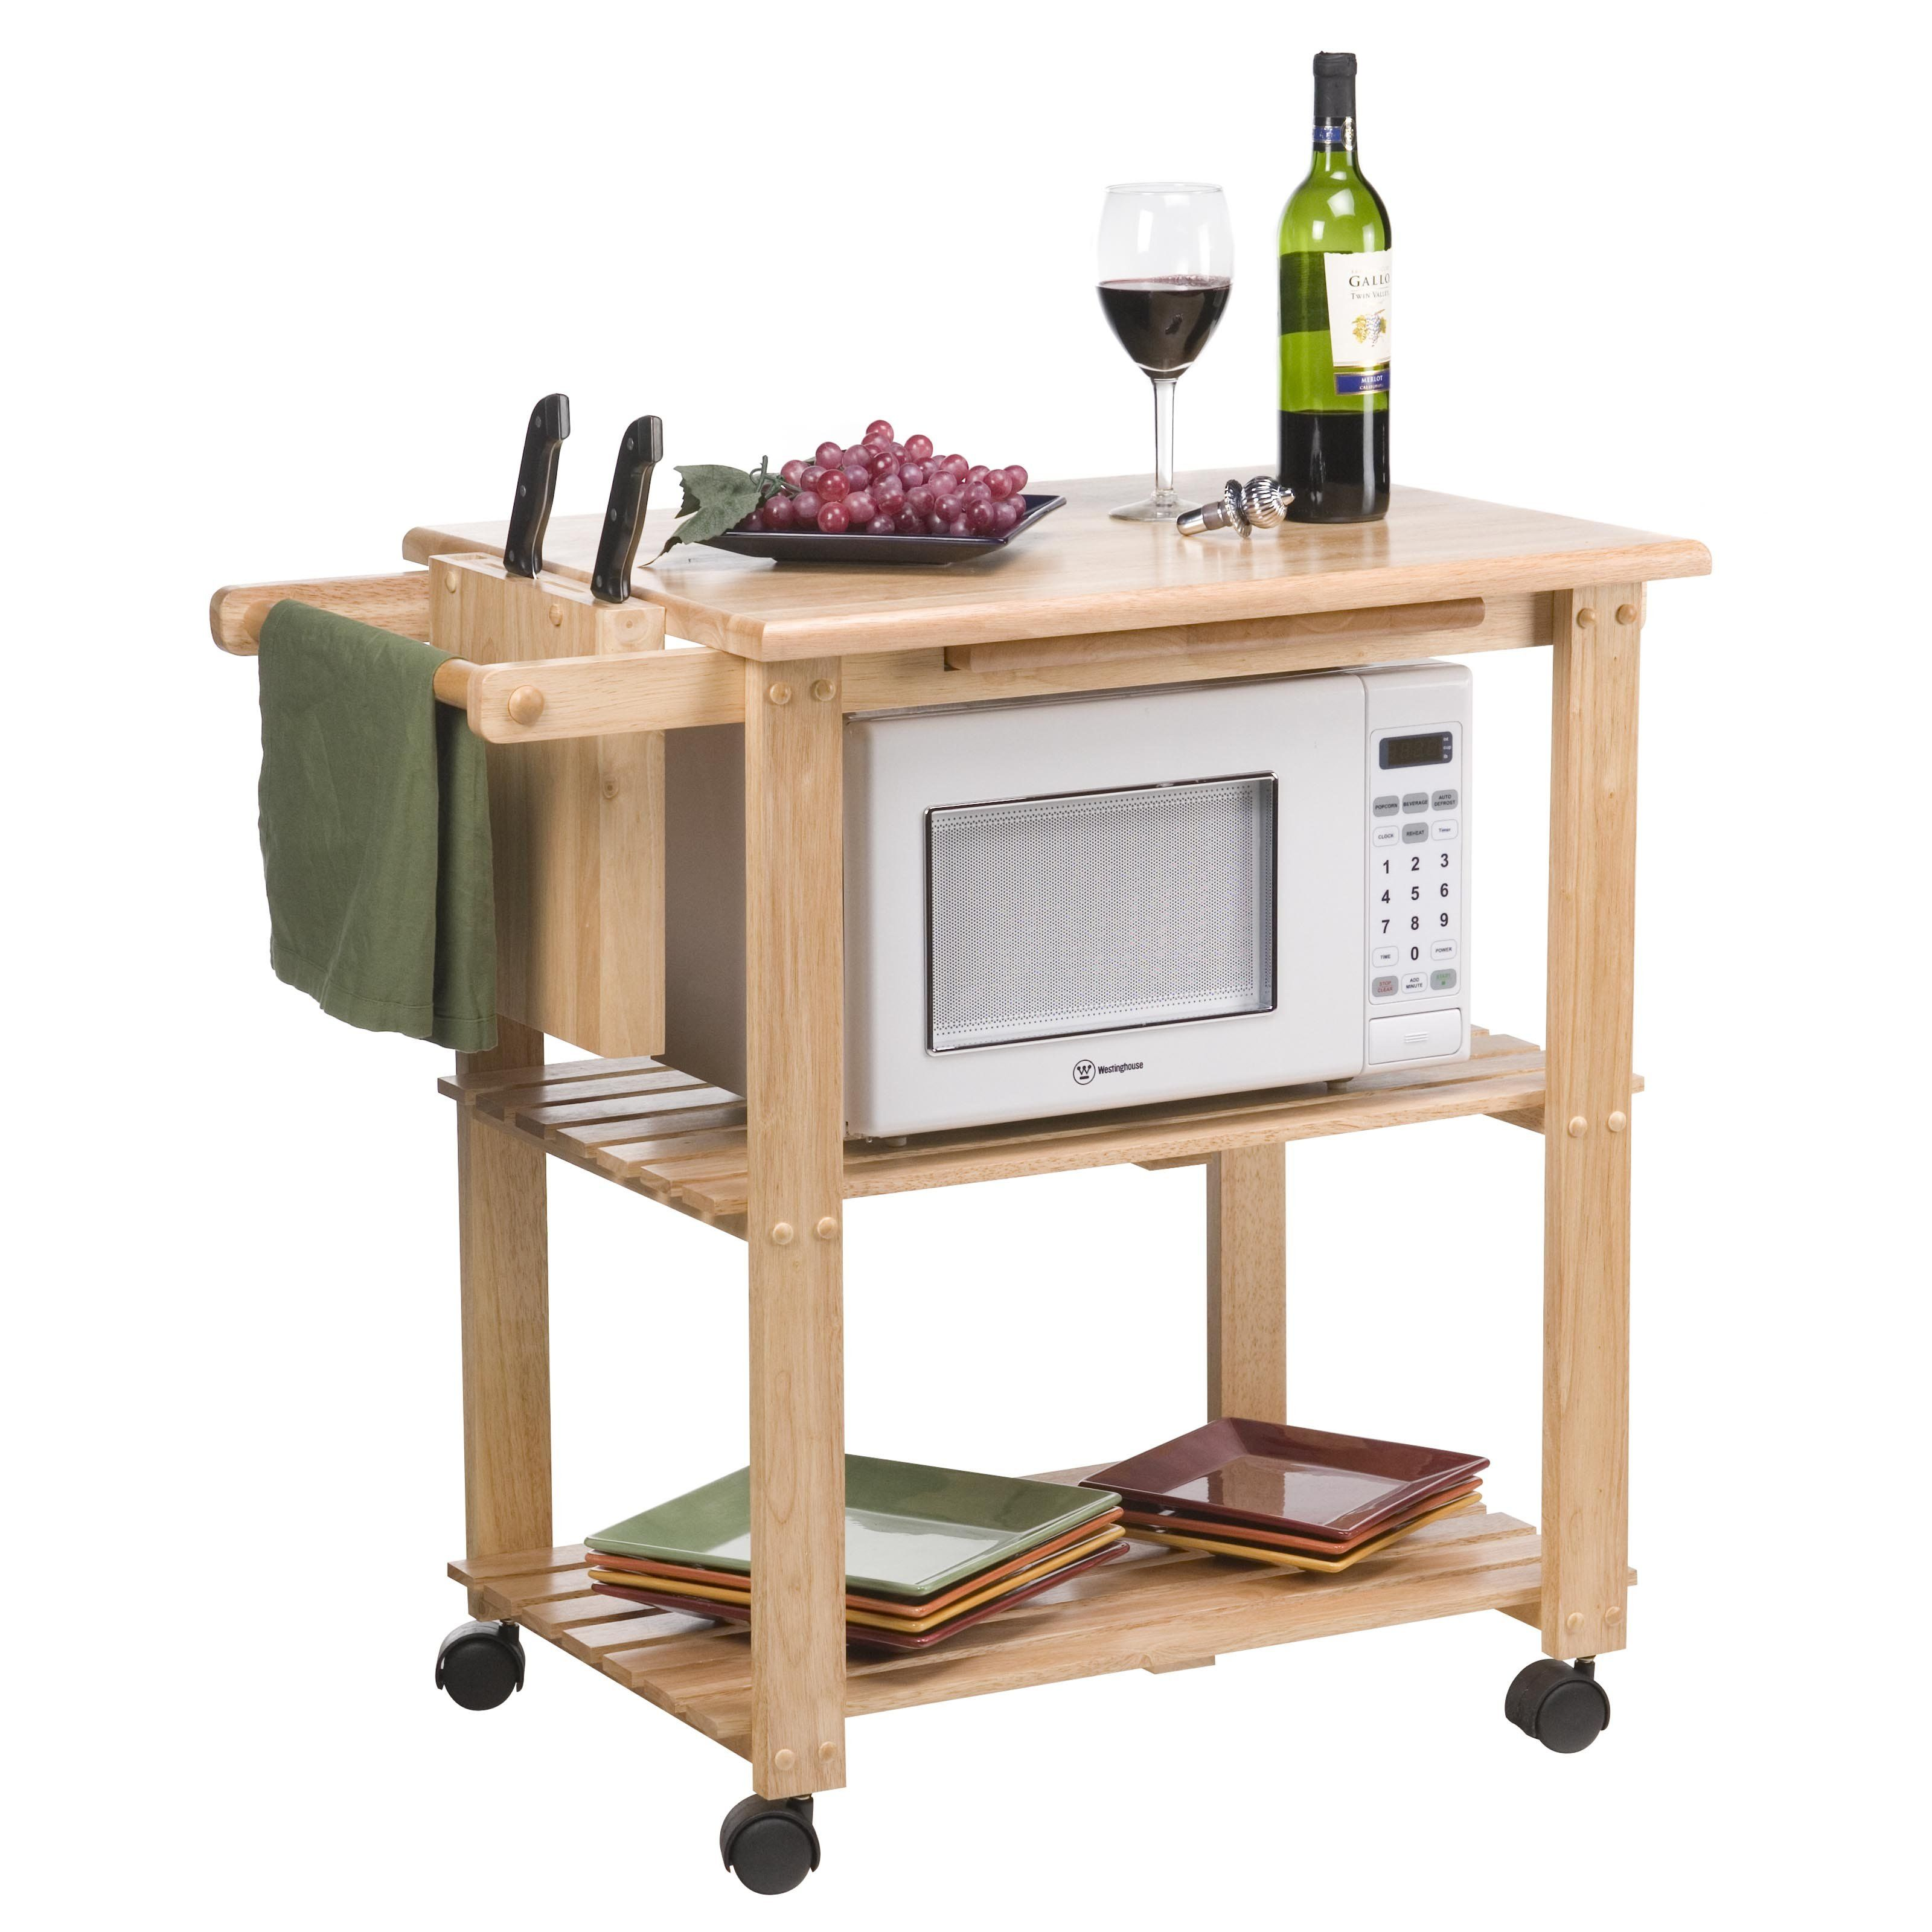 Great The Stetson Microwave Cart   This Convenient Wooden Utility Kitchen Cart  Adds Working And Storage Space To Your Kitchen Or Dining Area.